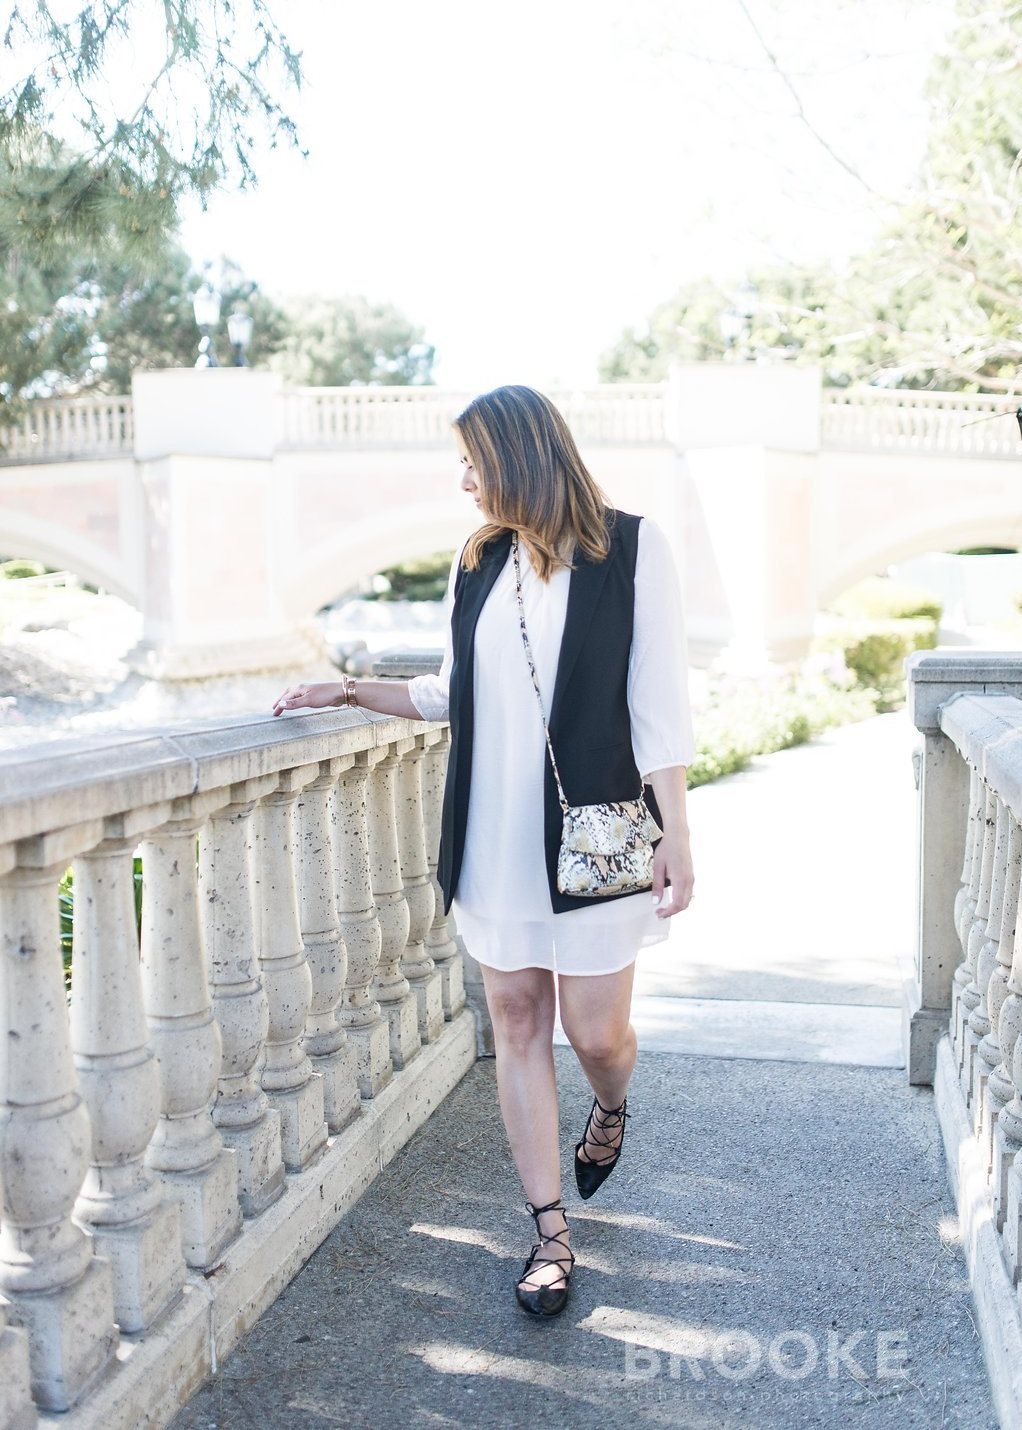 White dress and black vest, san diego fashion blogger, san diego style blogger, chic and simple outfit